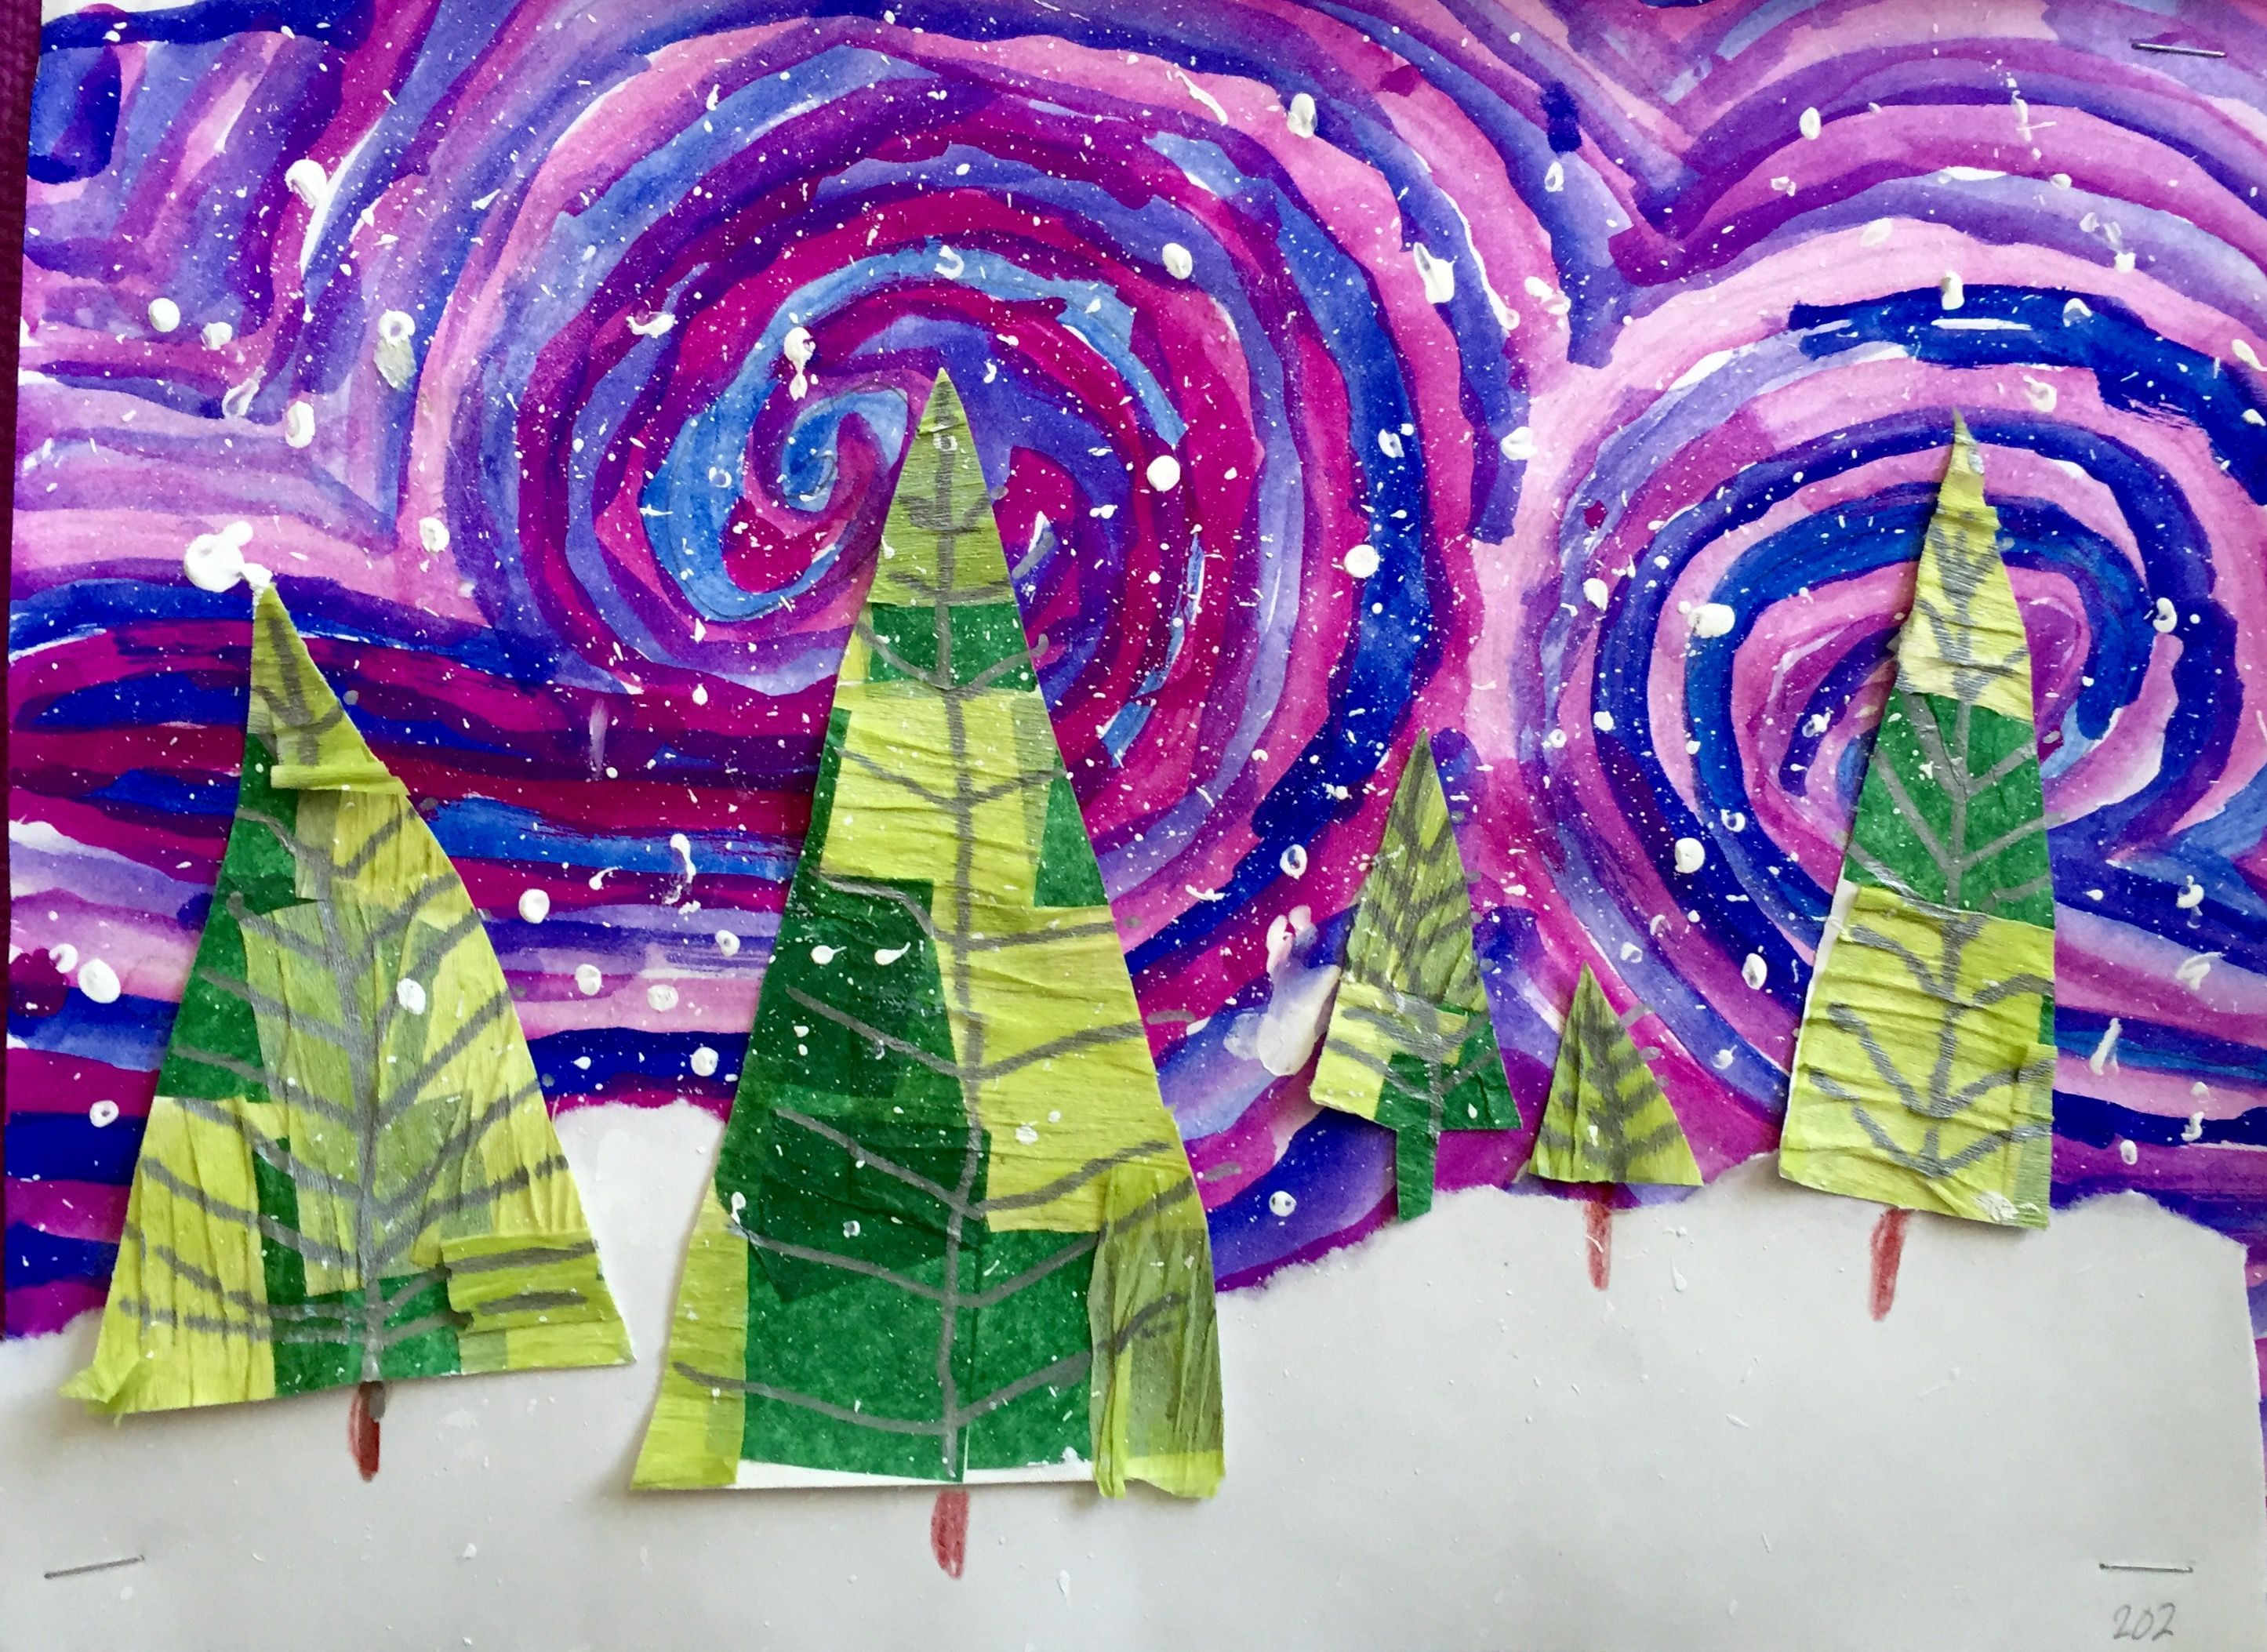 collage (trees), movement (sky) using line, foreground, mid ground, back ground with the trees.